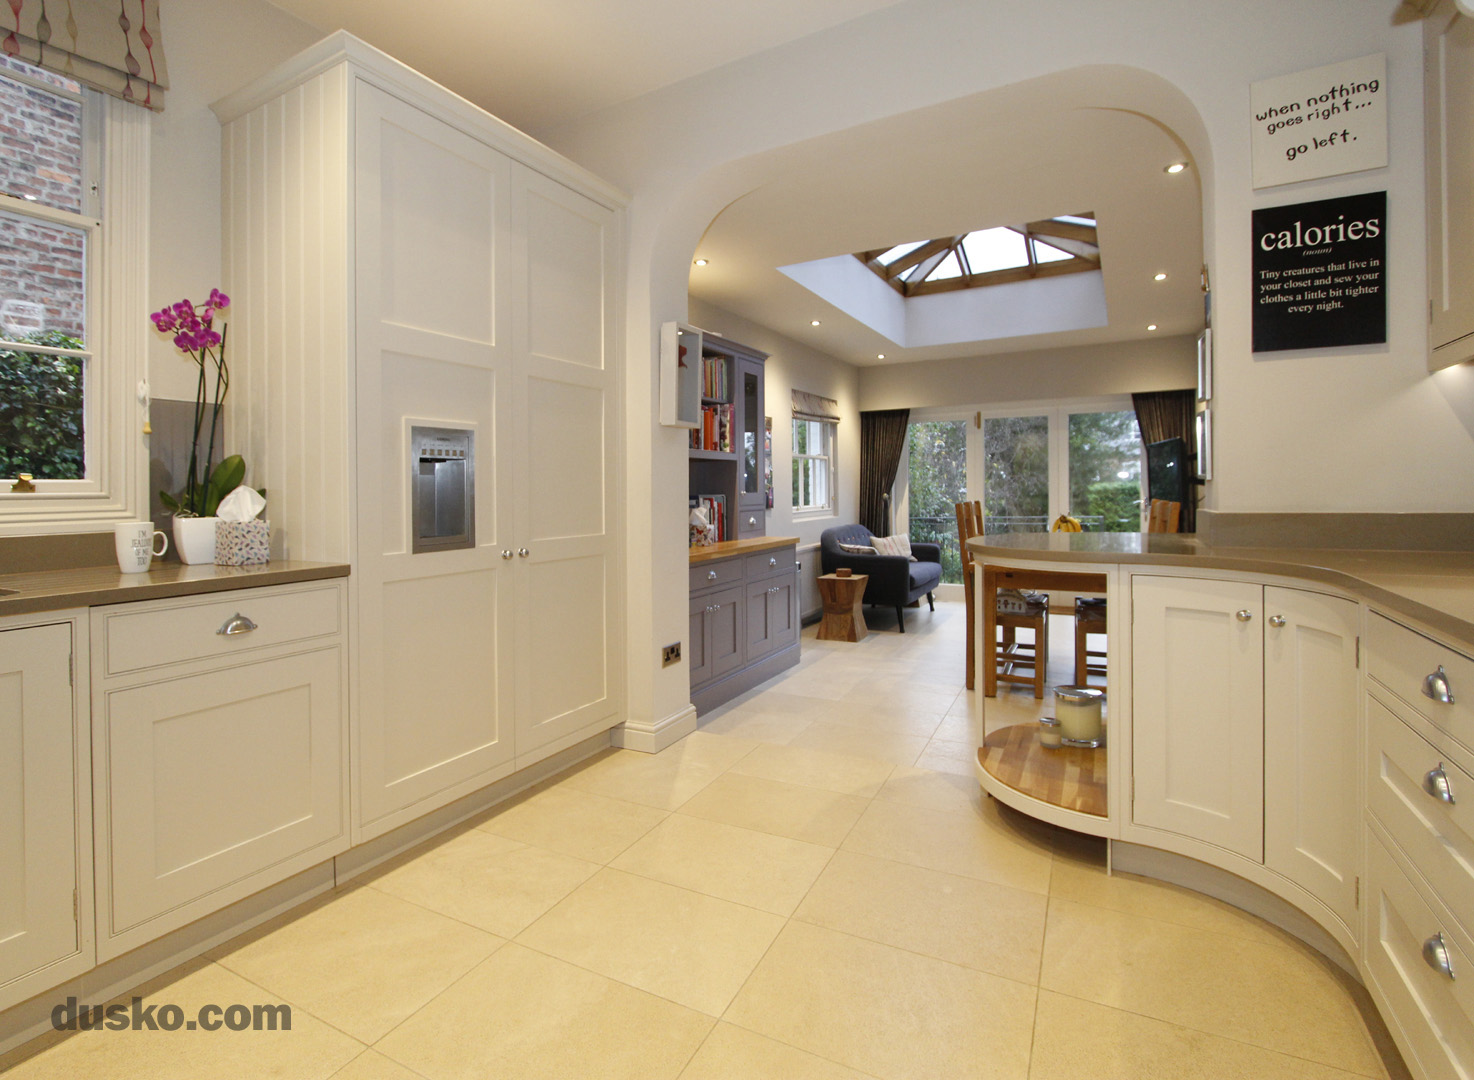 In Frame Kitchen in Bowdon, Cheshire Integrated Fridge Freezer